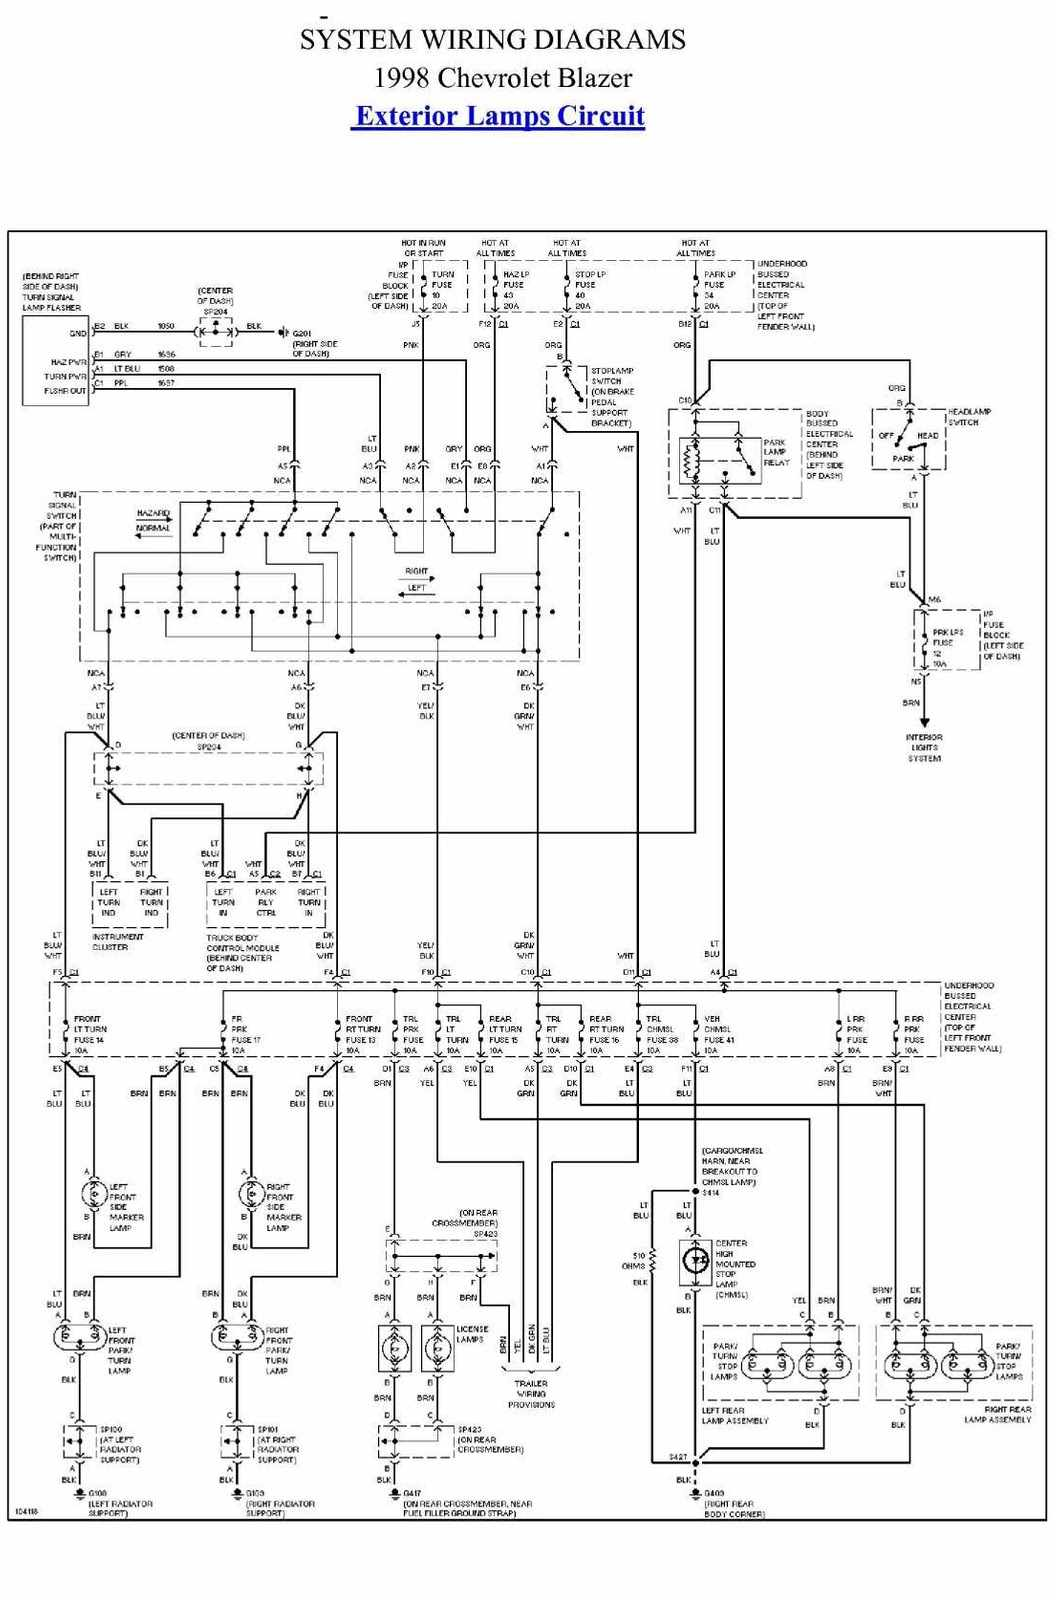 hight resolution of exterior lamp circuit diagram of 1998 chevrolet blazer